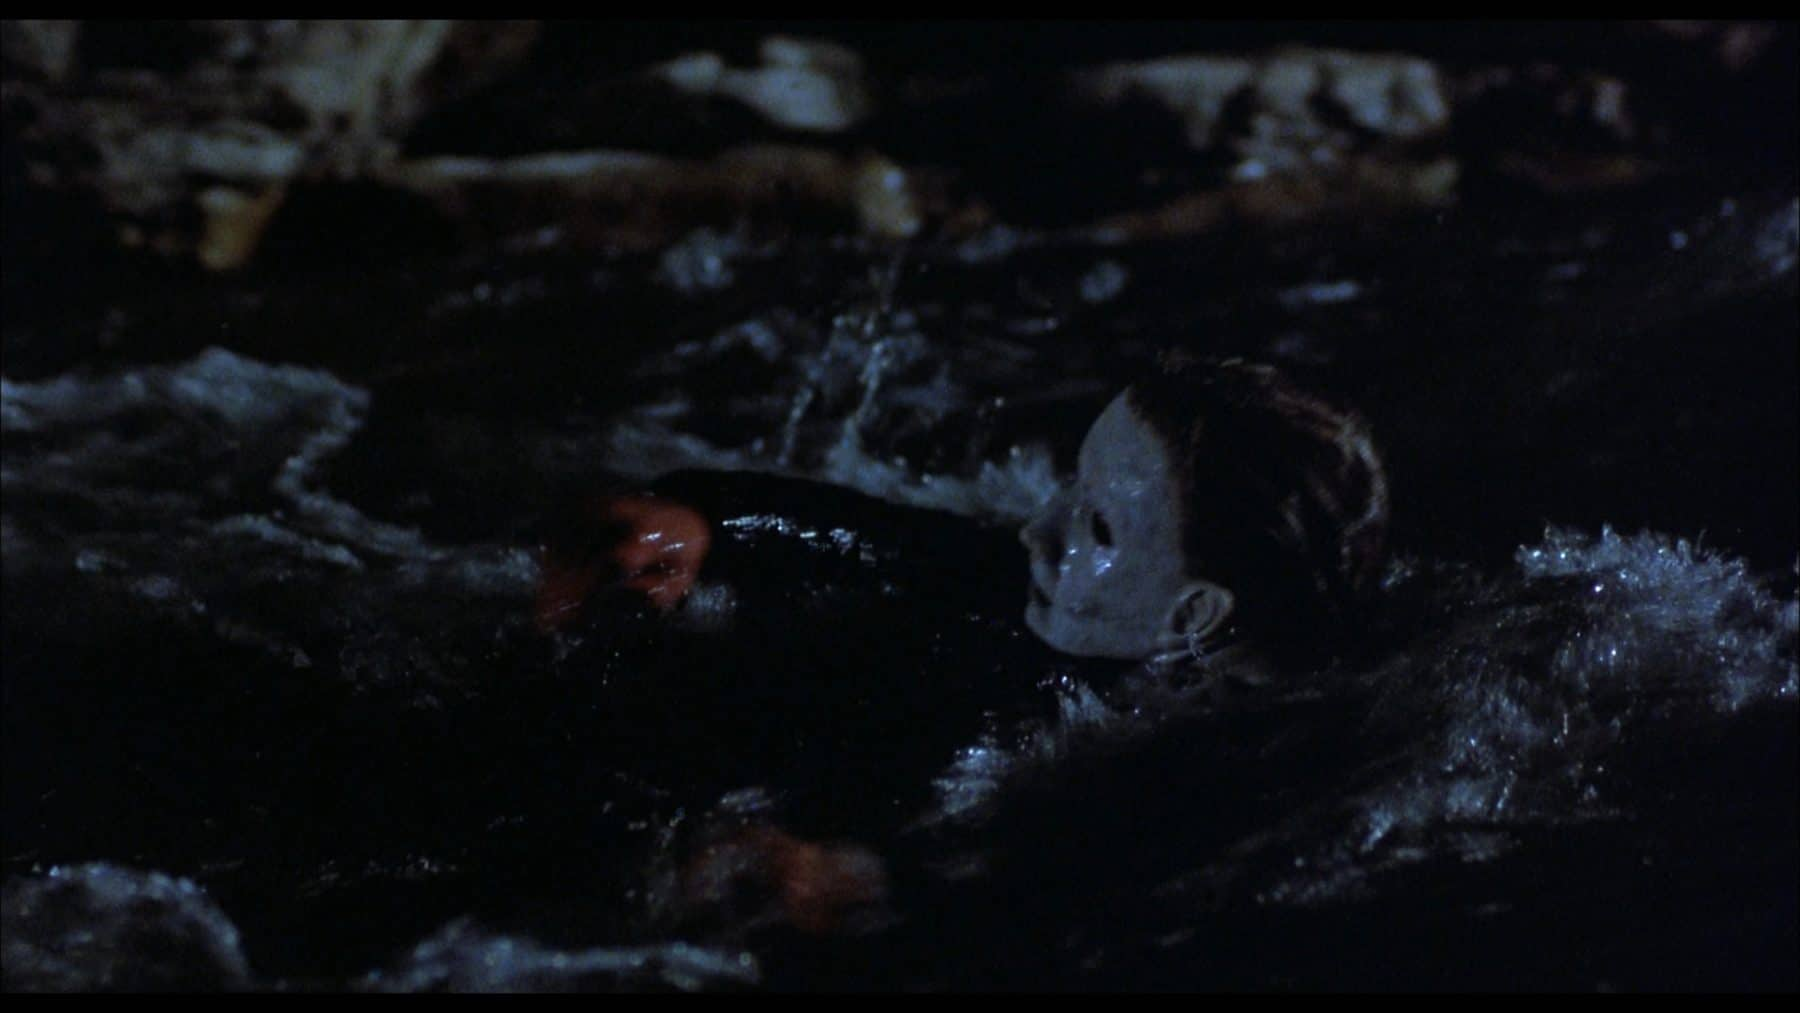 H5 - Michael In Water